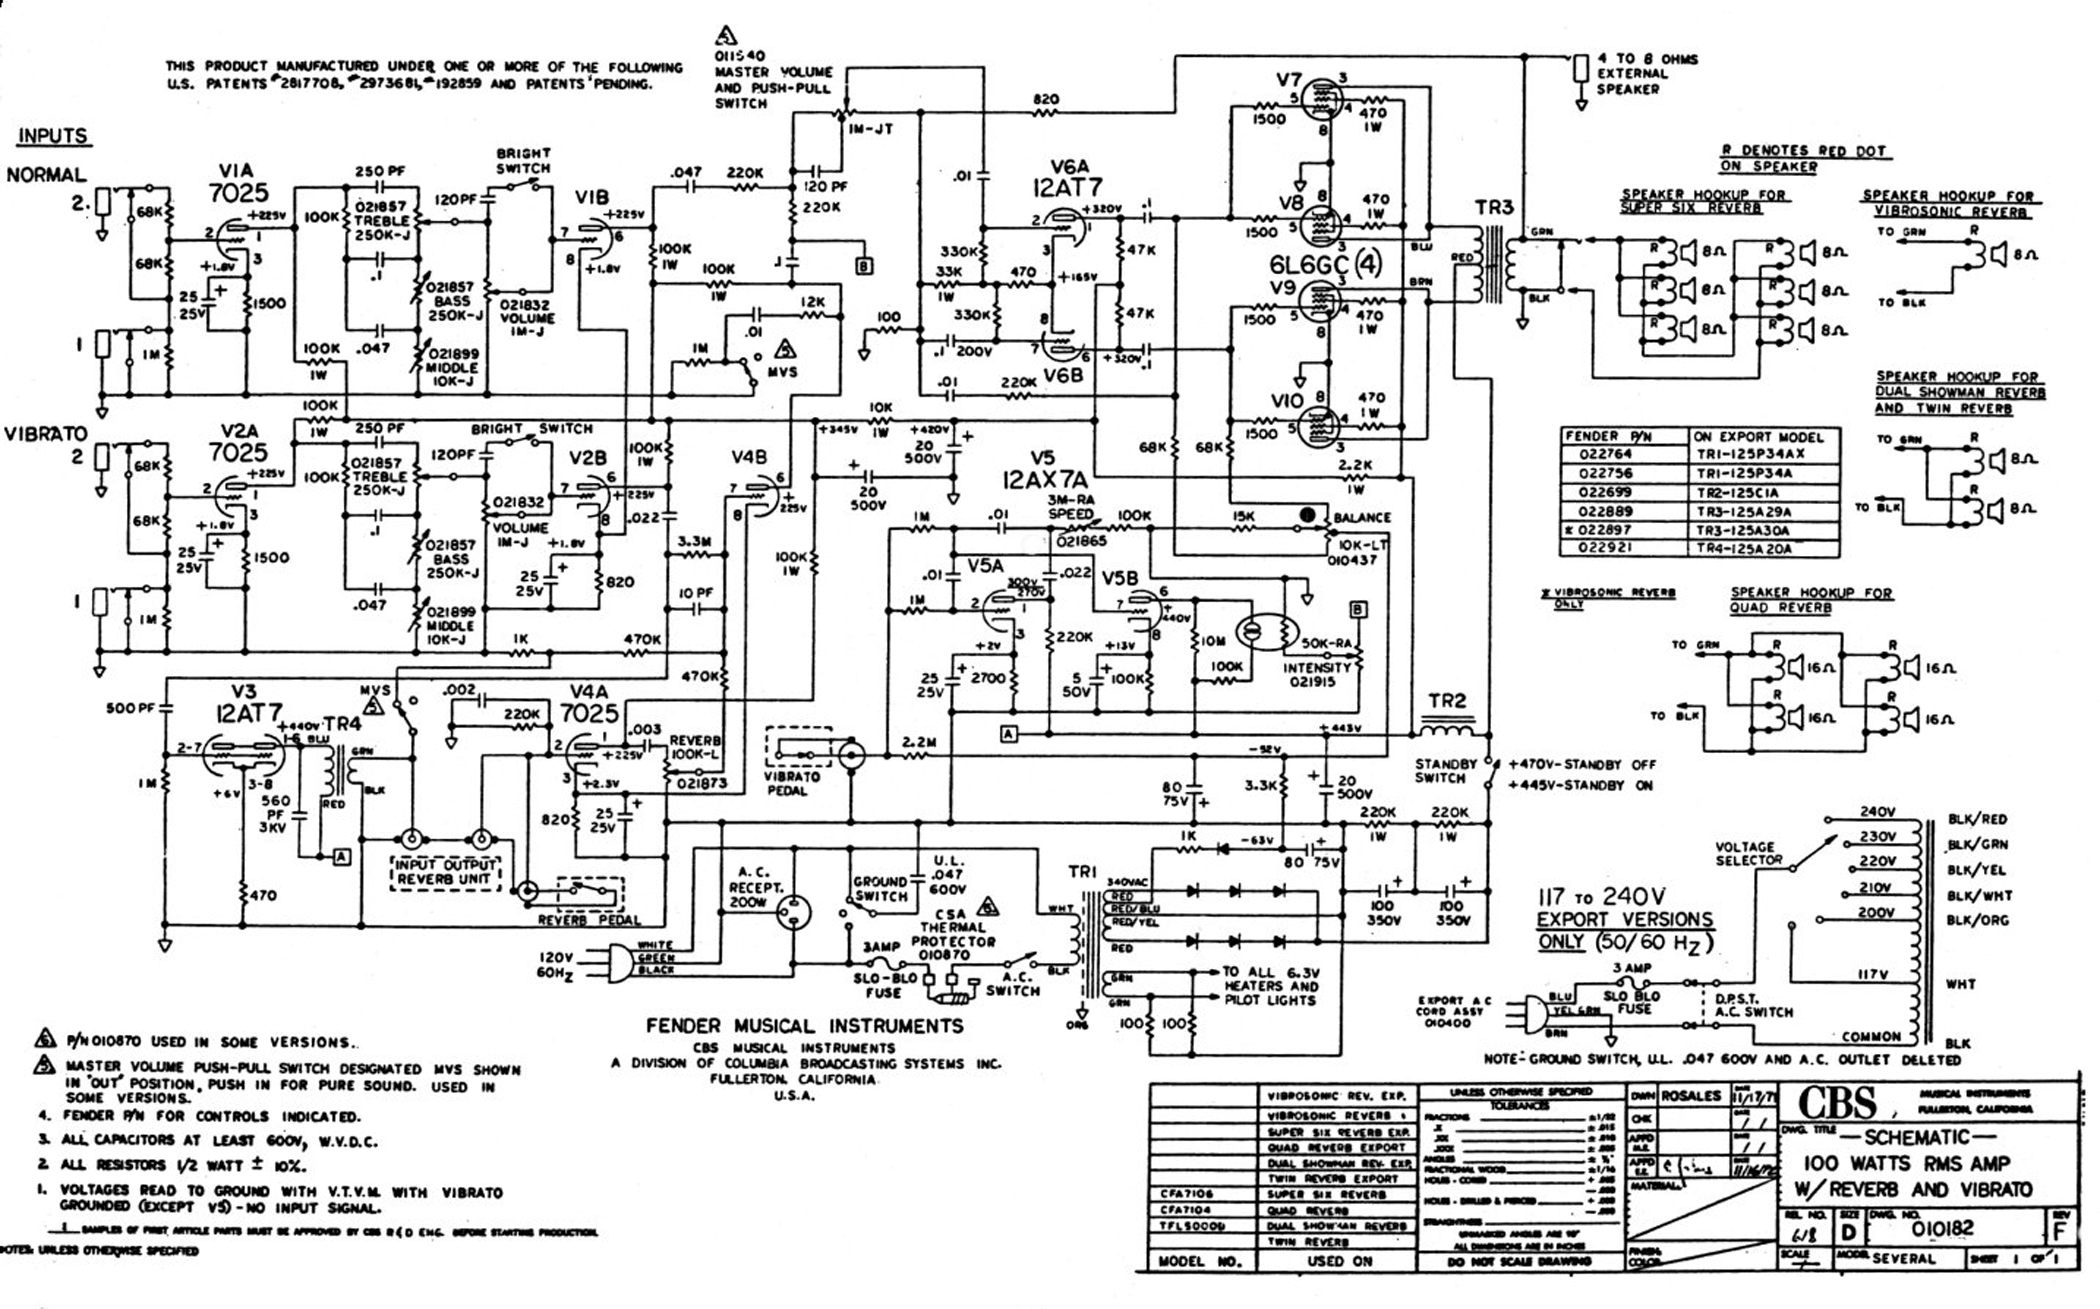 Super Six Schematic fender super six reverb ampwares fender vaporizer circuit diagram at nearapp.co